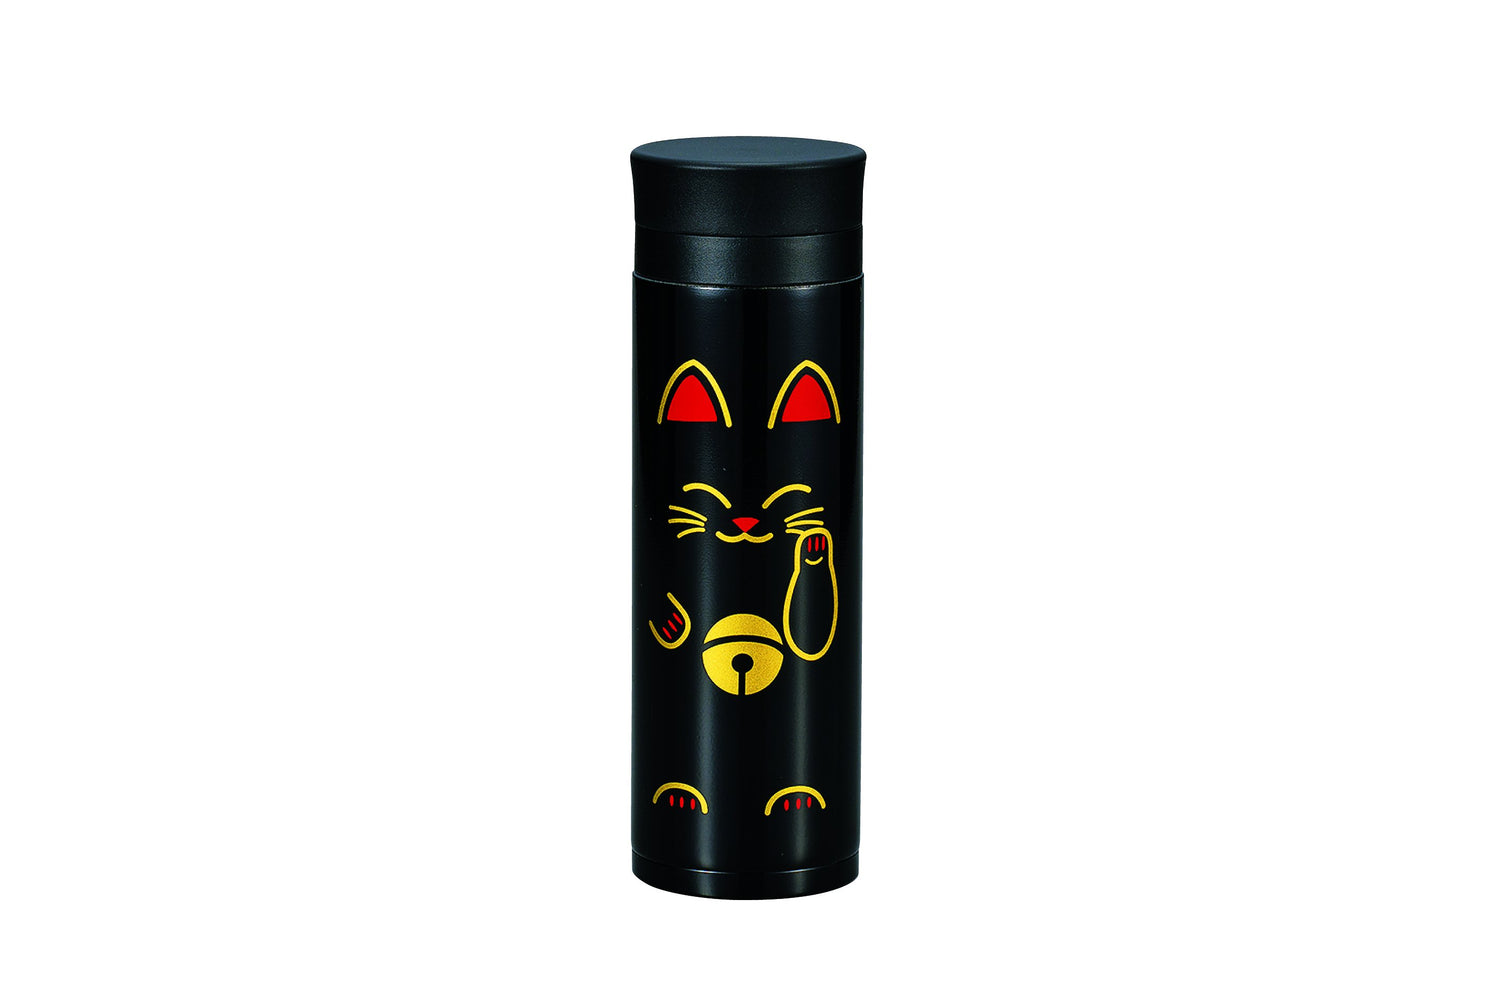 Manekineko Stainless Steel Bottle | Black